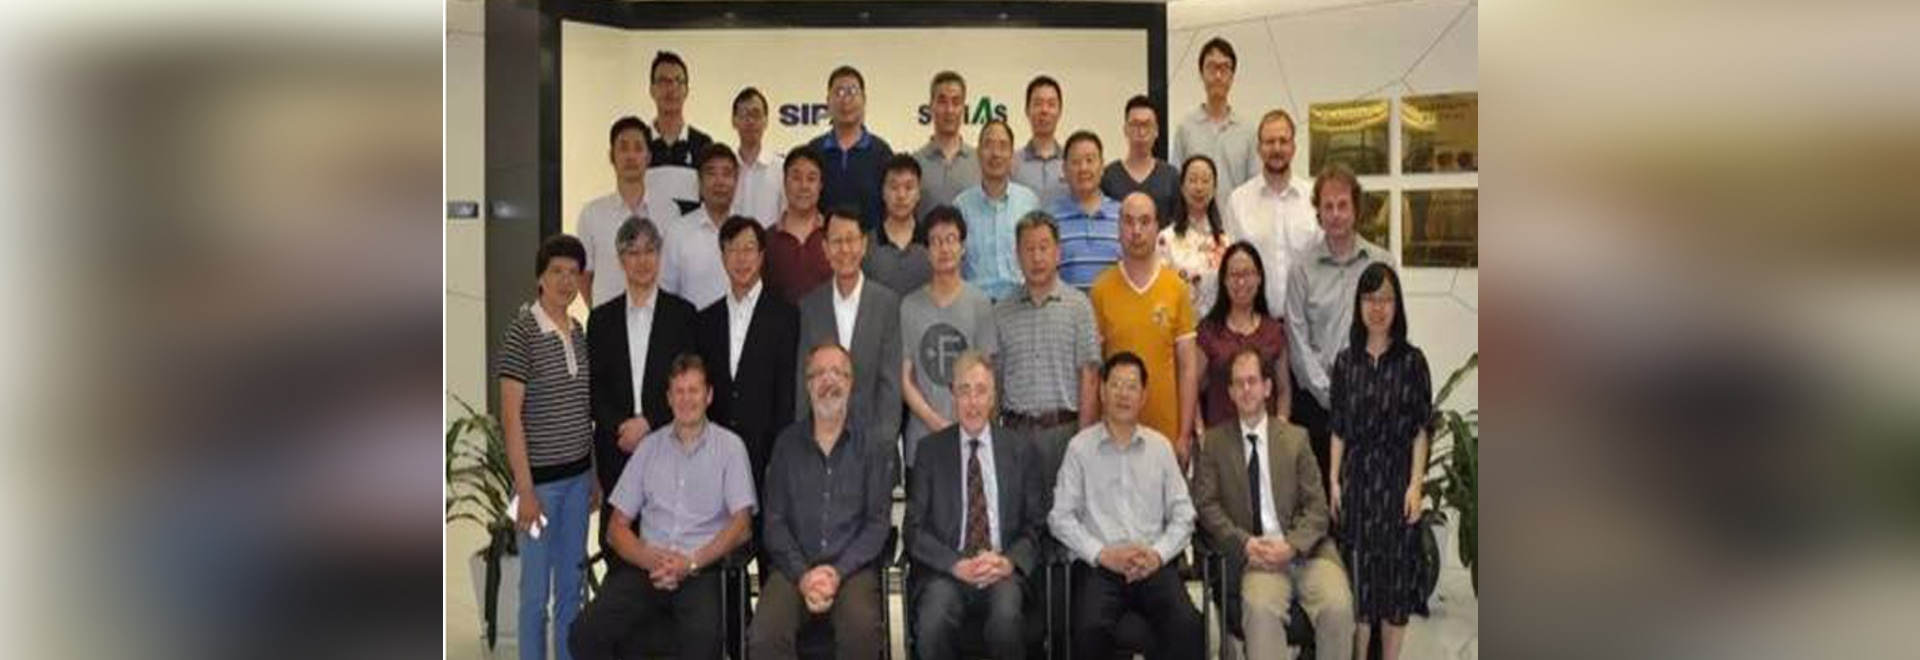 Chinese and foreign experts photo